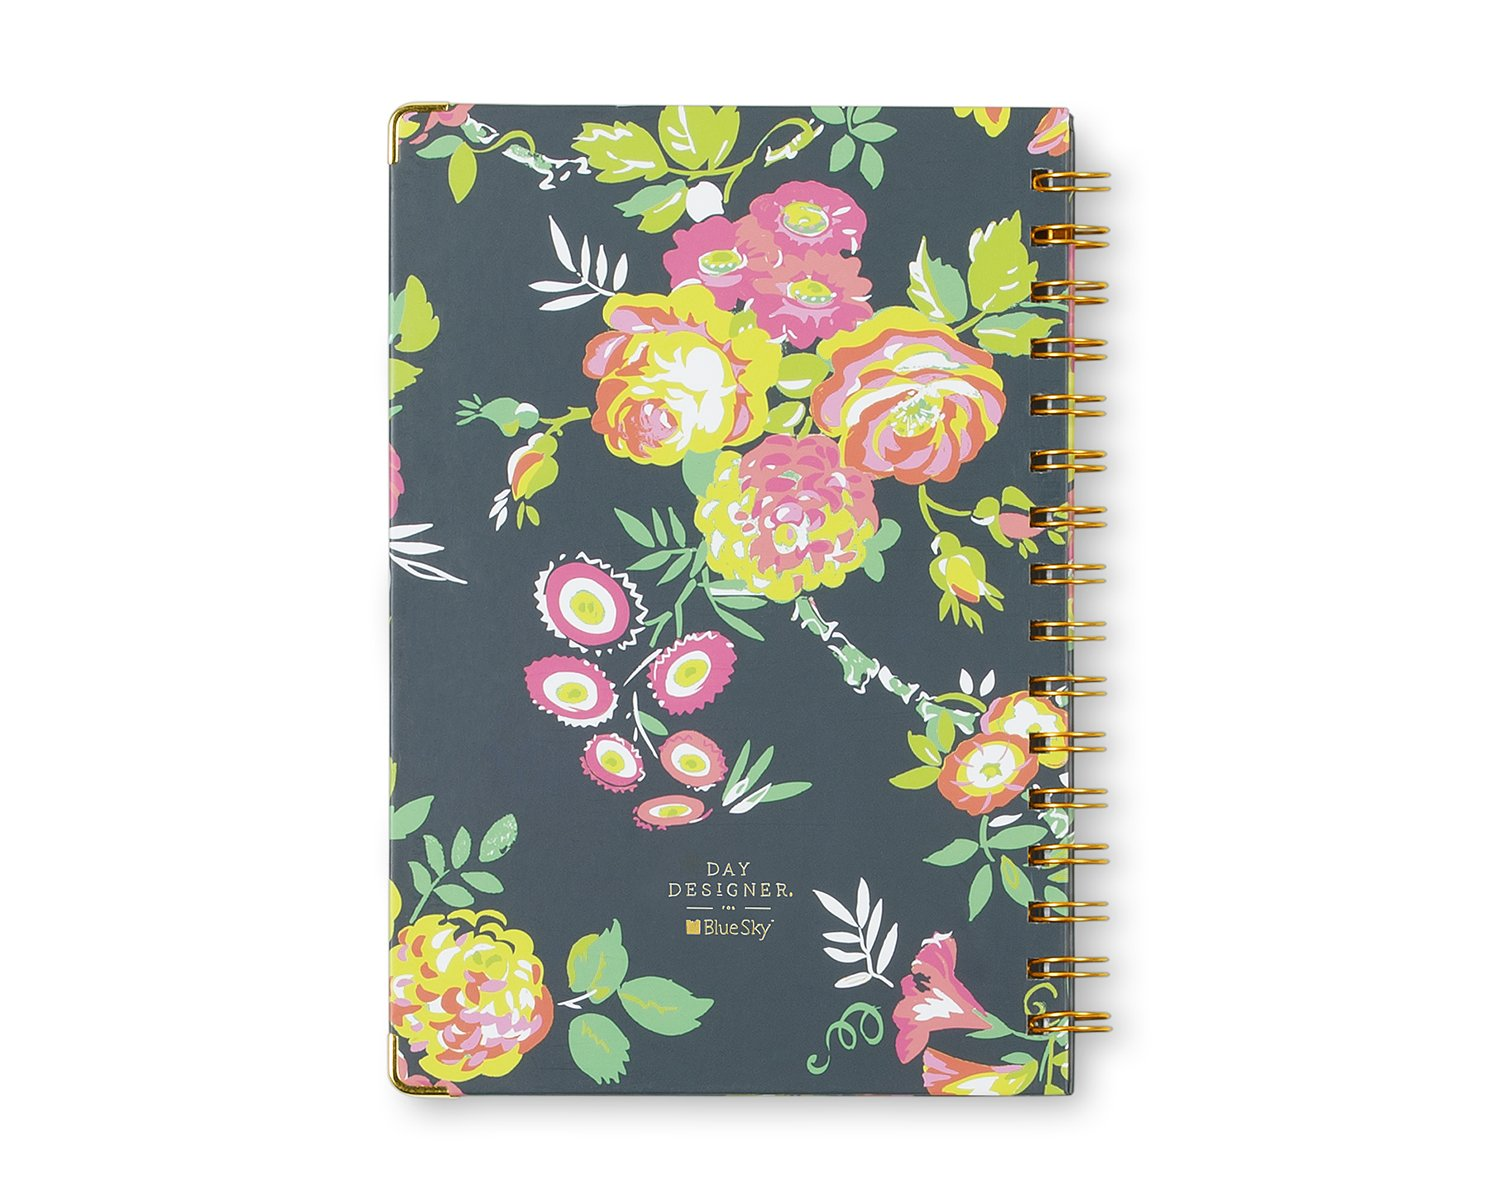 Day Designer for Blue Sky Notebook Journal, 160 Ruled Pages, Hardcover, Twin-Wire Binding, 5.75'' x 8.5'', Peyton Navy by Blue Sky (Image #4)